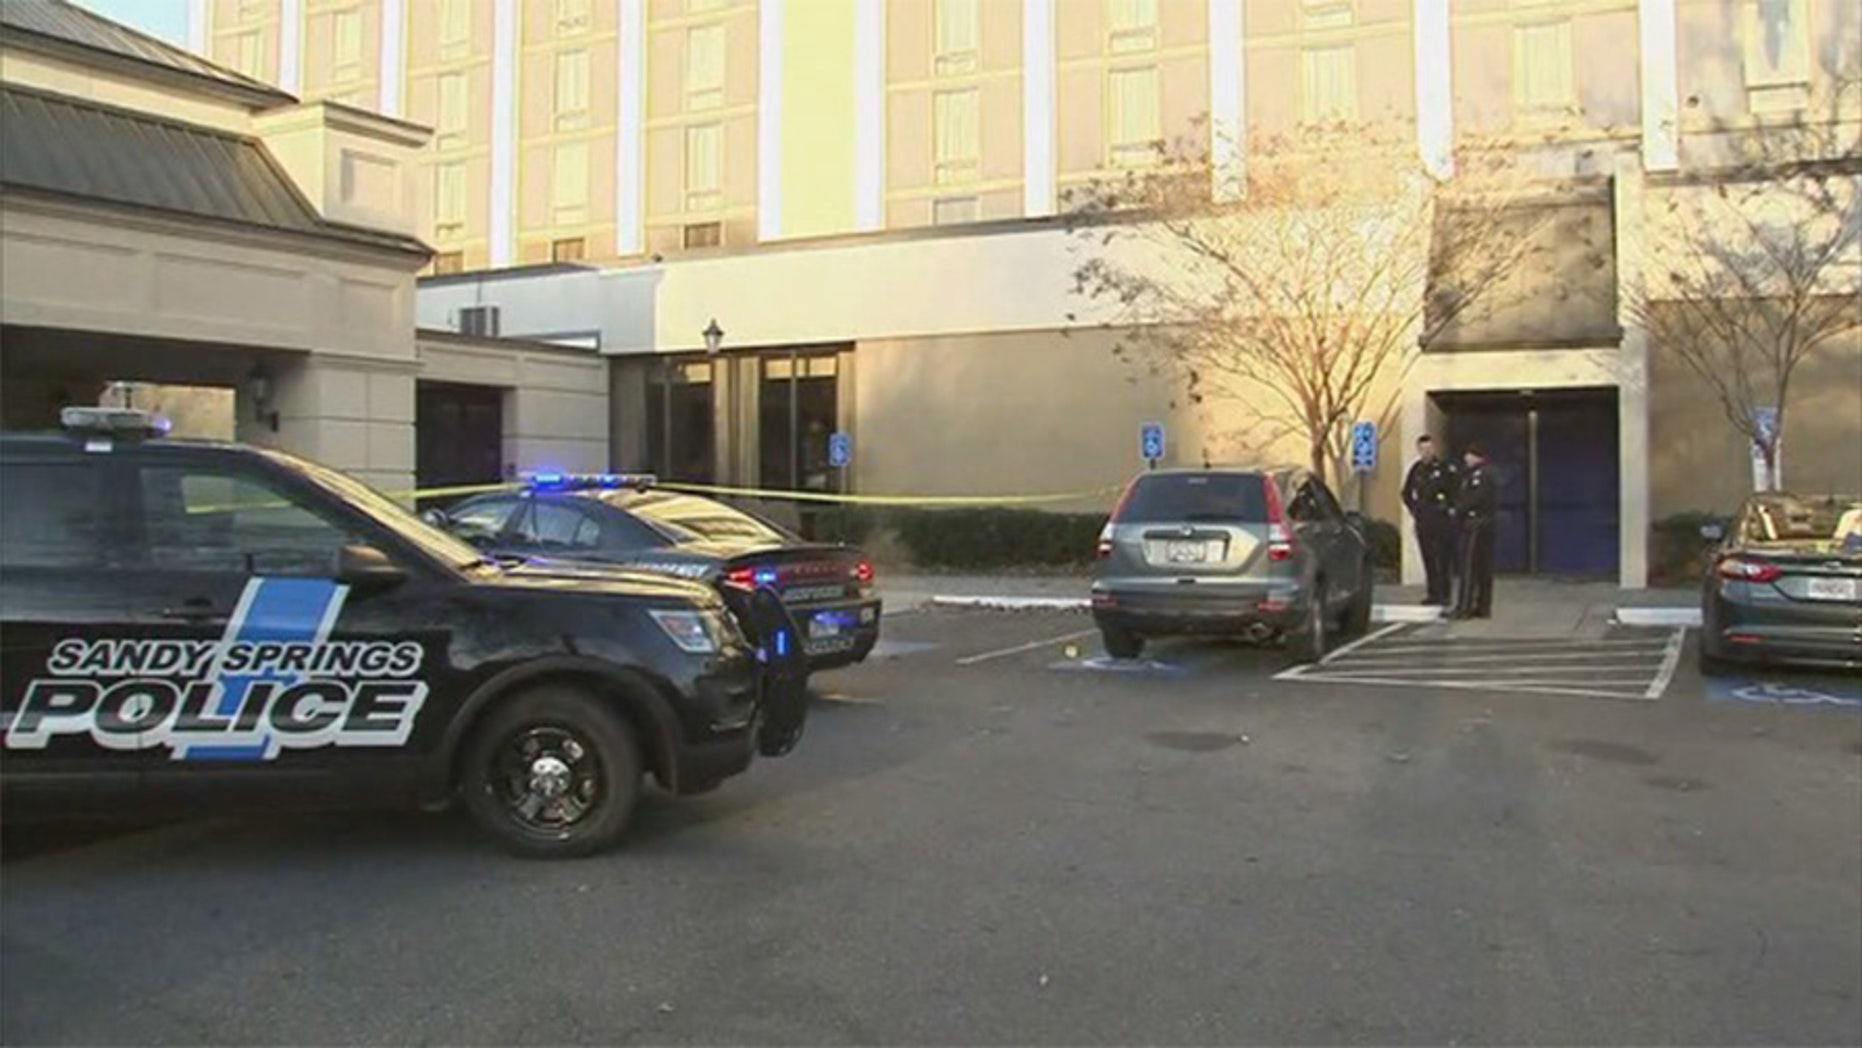 An FBI agent attempted to make an arrest at a hotel Friday in Sandy Springs, Ga., when he got caught on a truck being driven by the suspect and subsequently dragged through the Atlanta suburb.